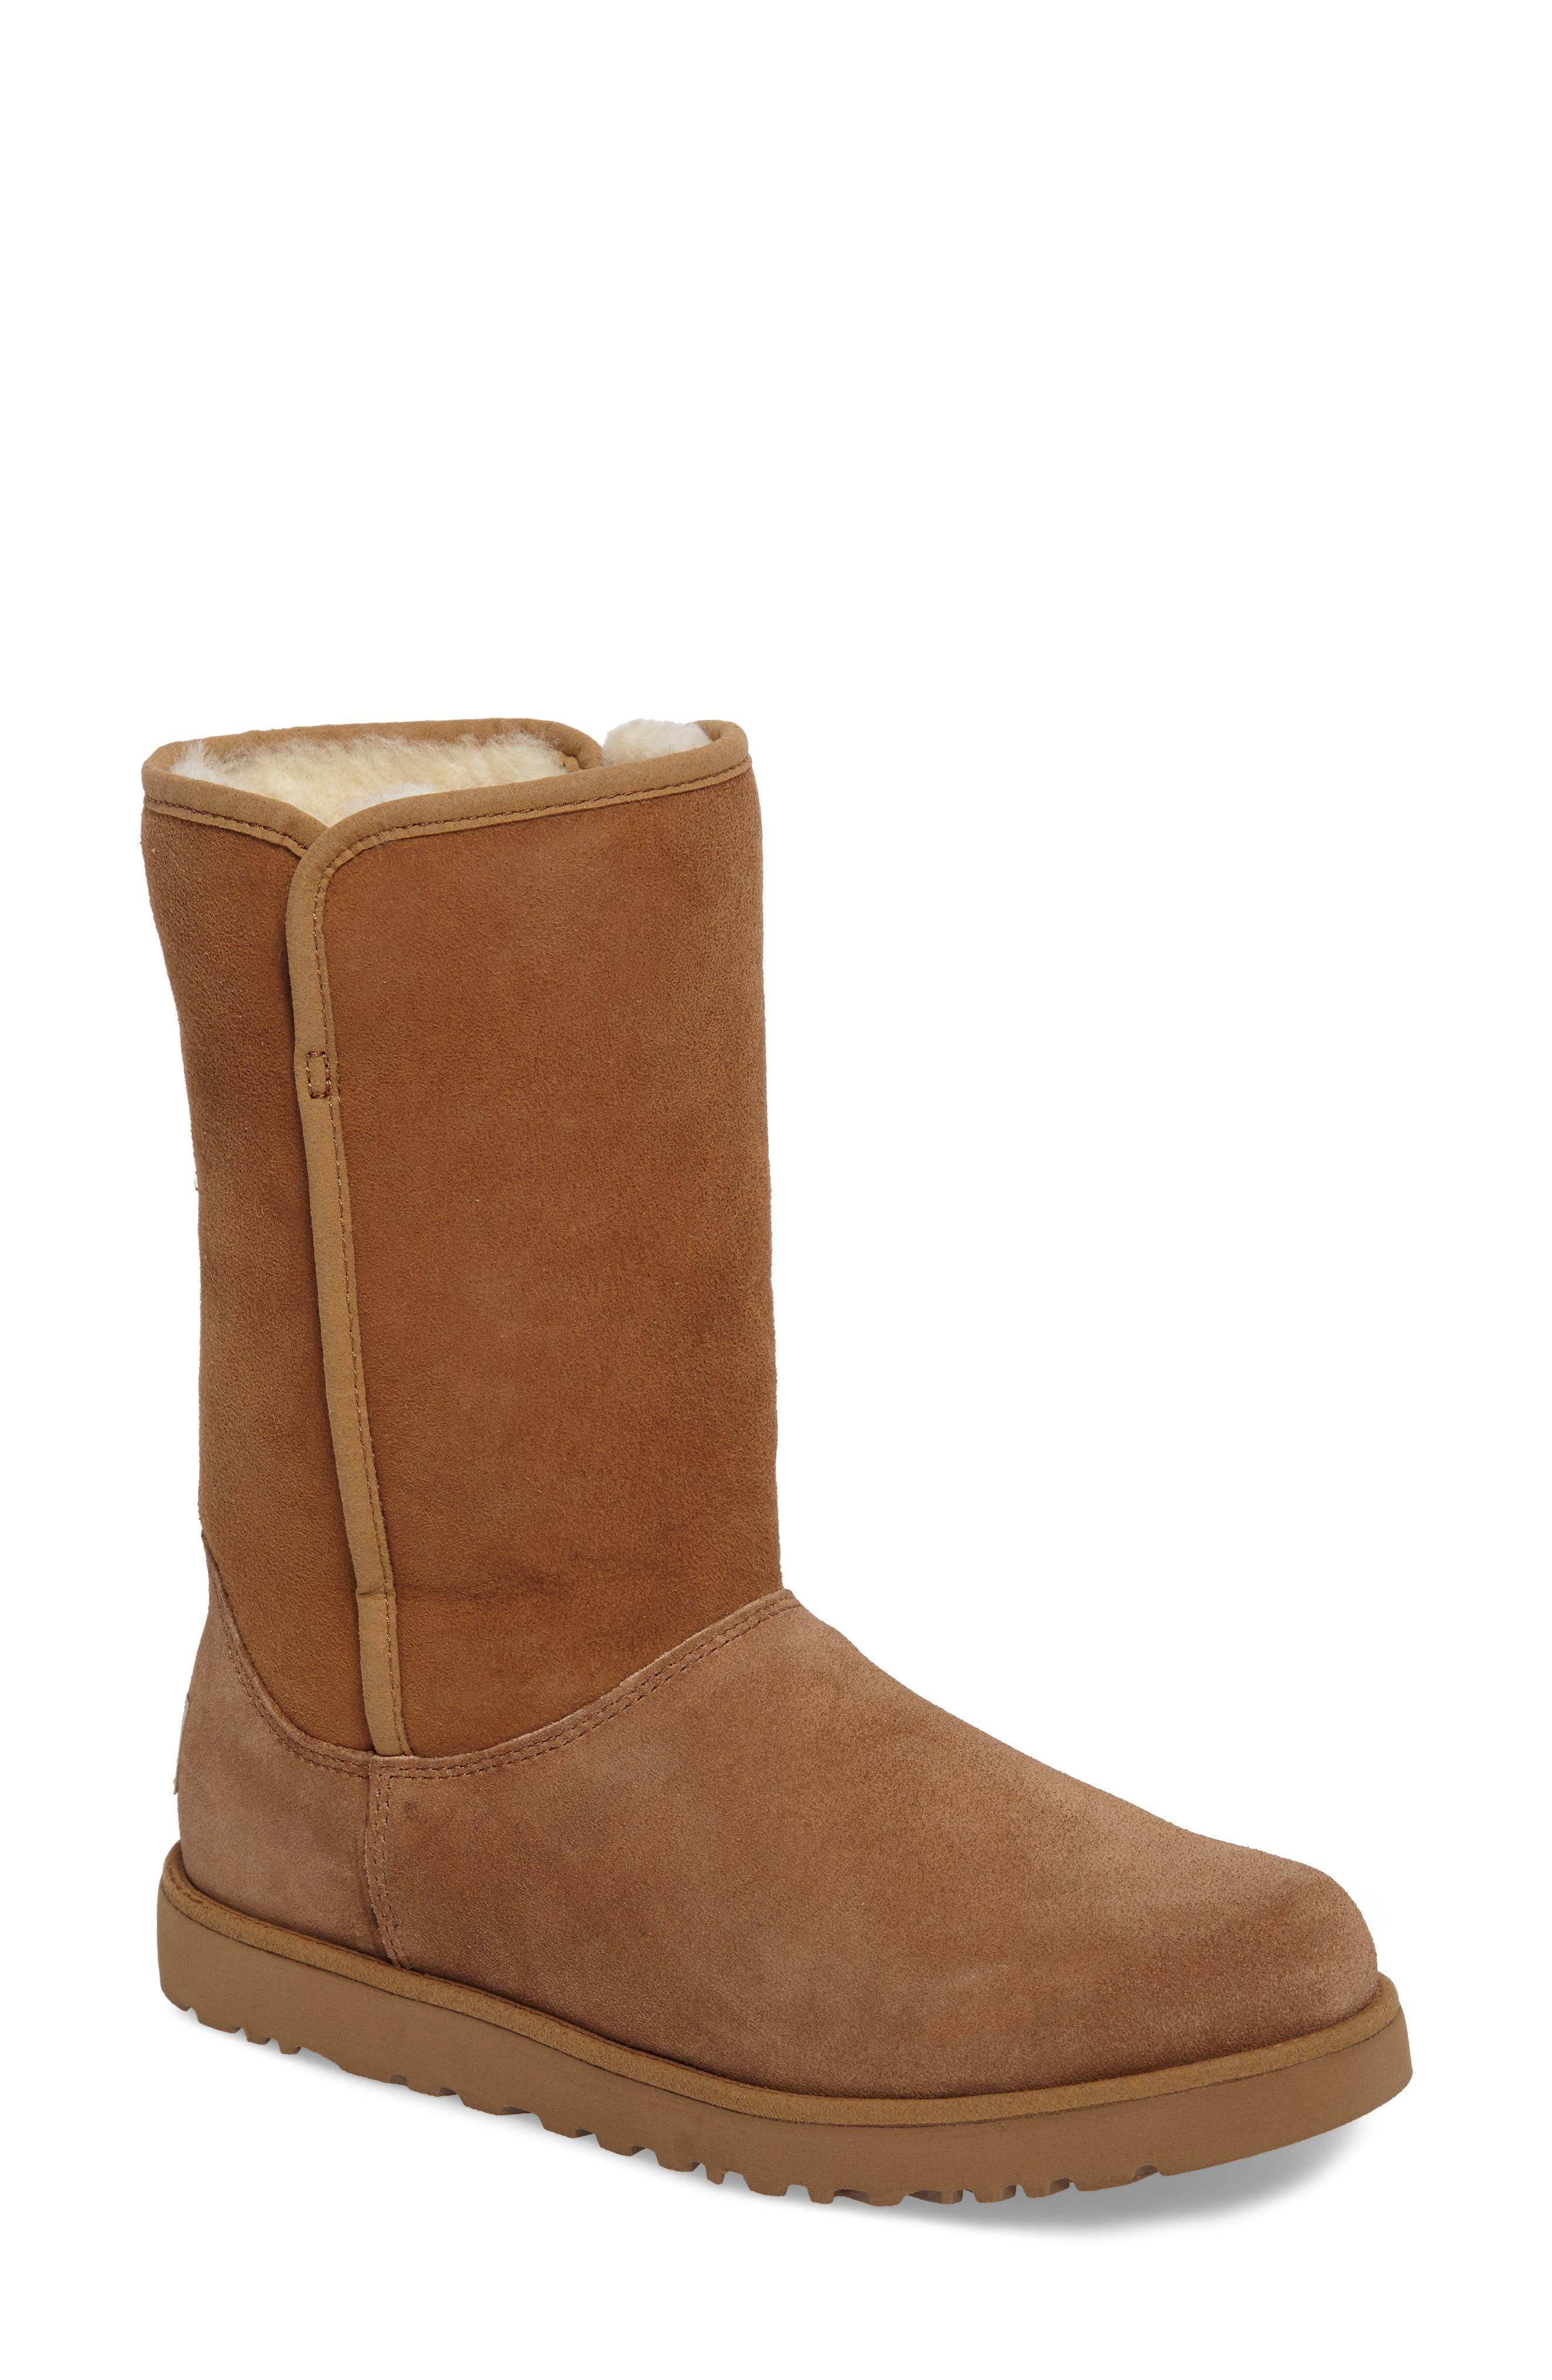 'Michelle' Boot,                         Main,                         color, Chestnut Suede